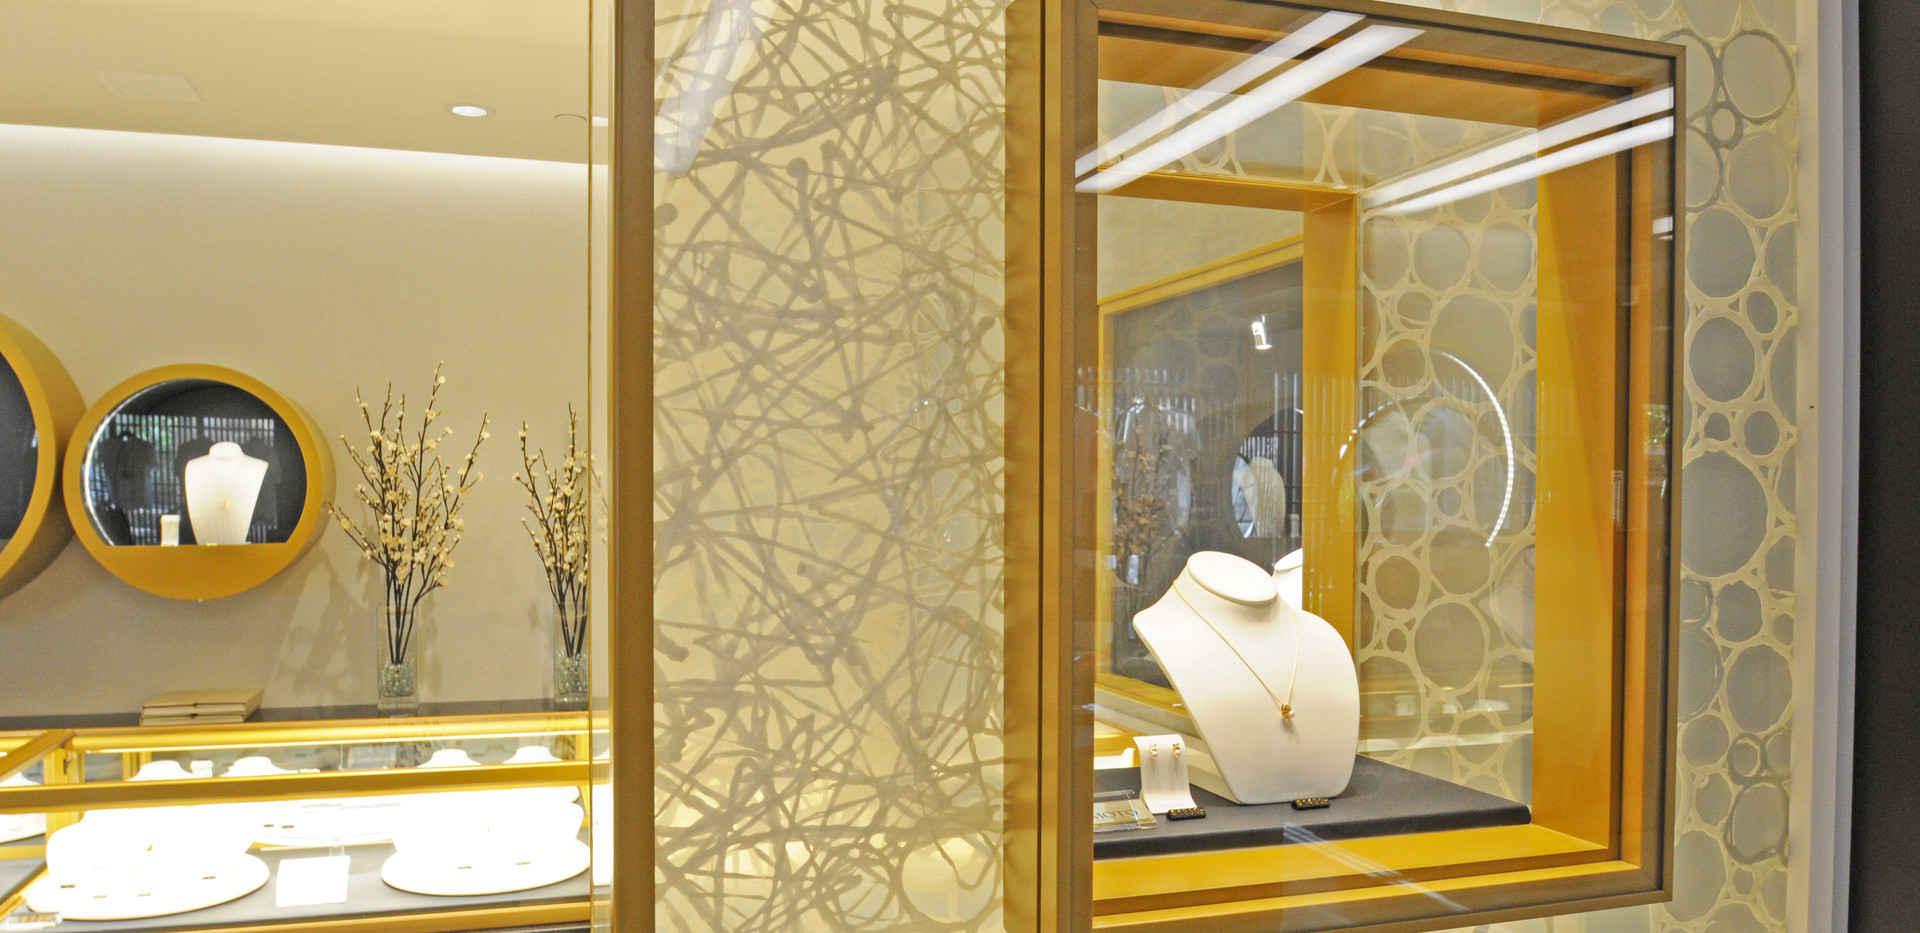 Mitsukoshi Jewelry Display